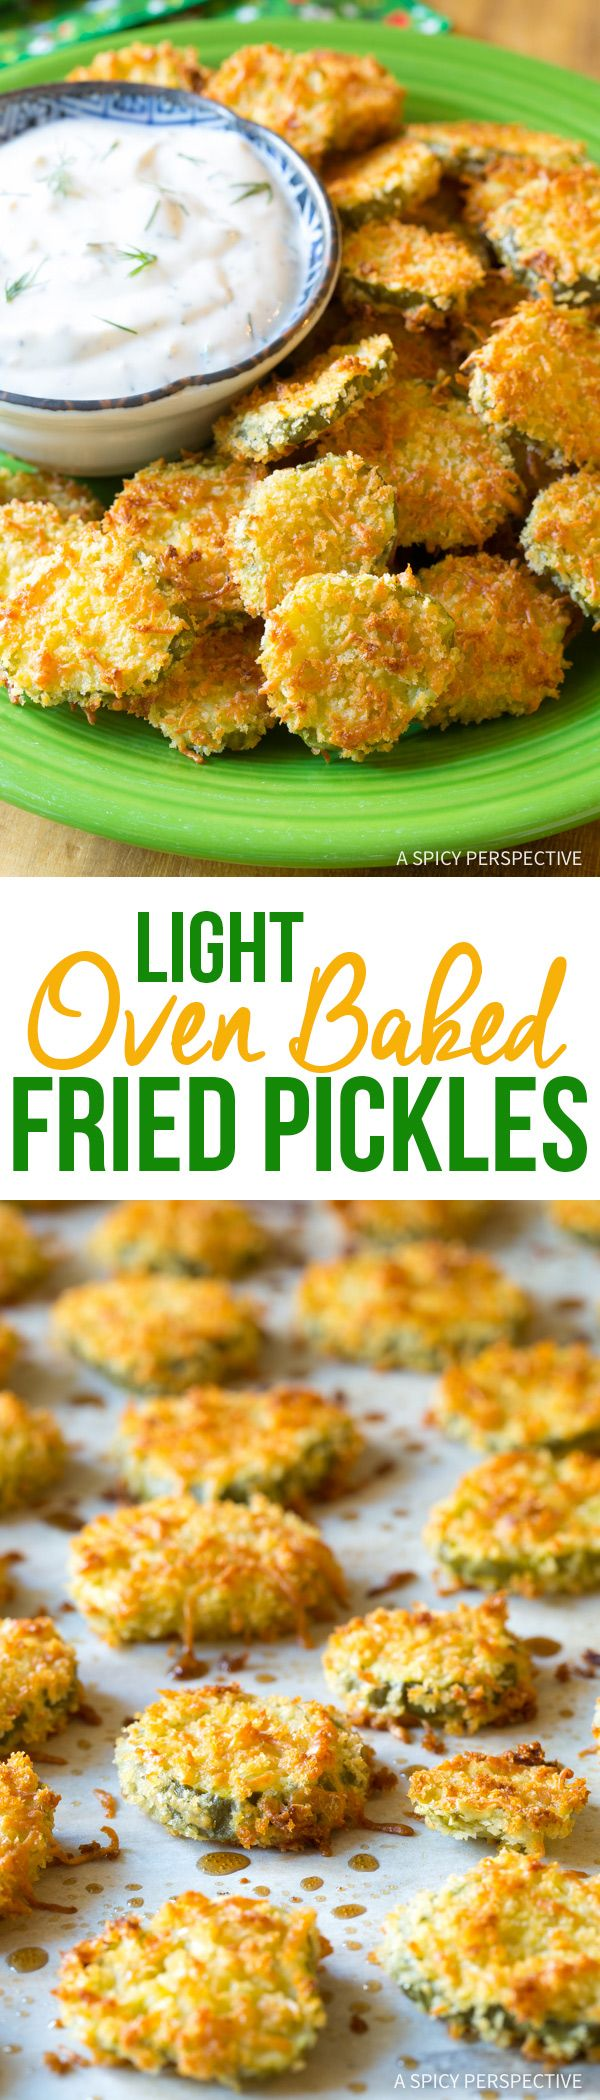 "Light Oven Baked ""Fried"" Pickles with Garlic Sauce recipe from @spicyperspectiv"